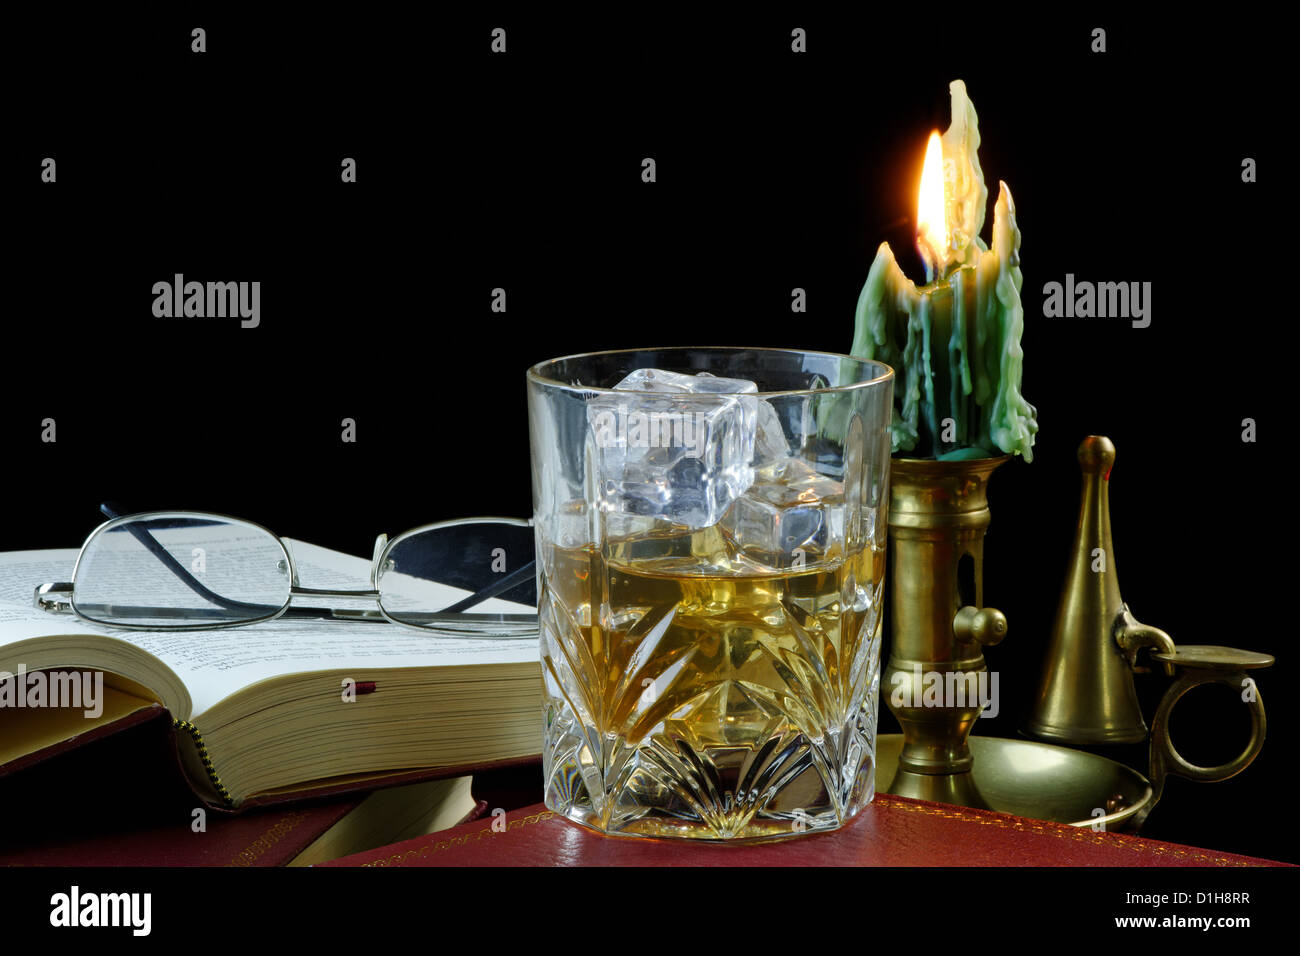 A glass of whisky with ice standing on an antique book, with candle and glasses - Stock Image